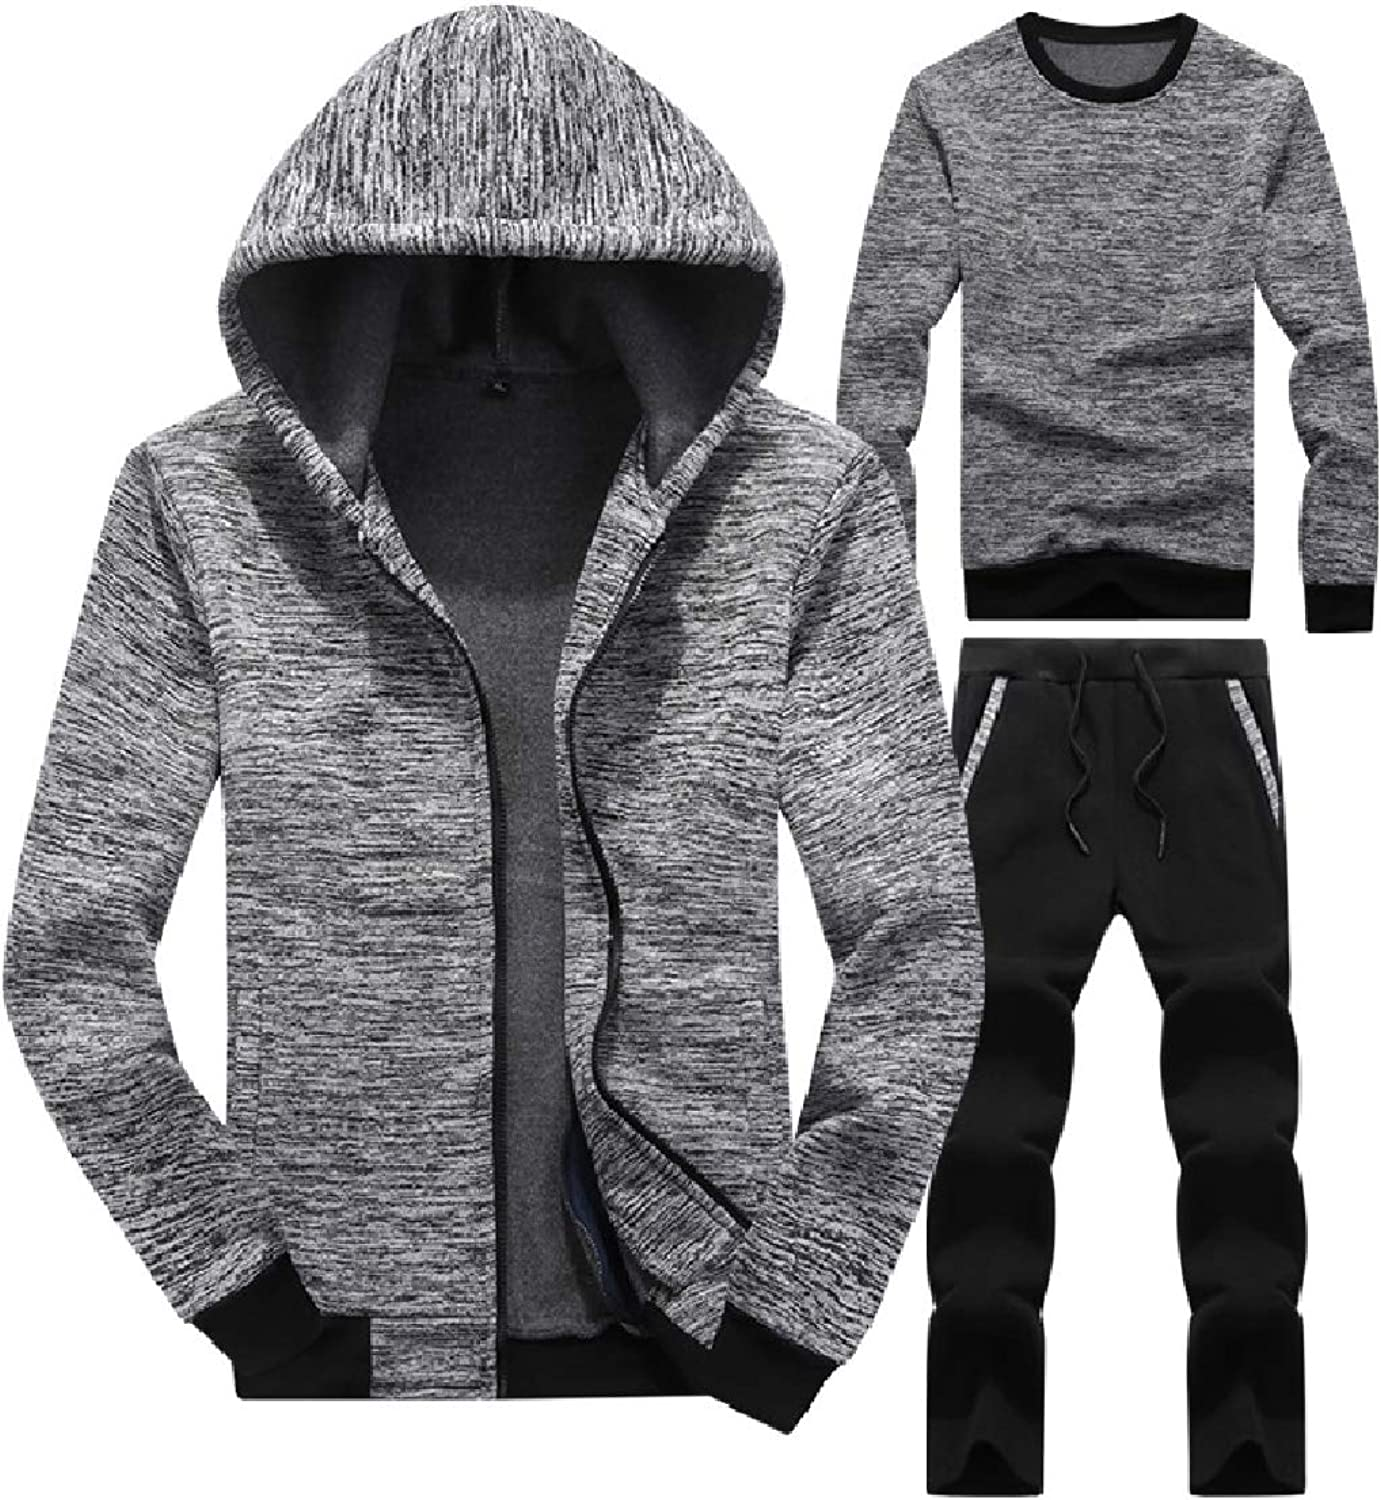 Abetteric Mens RelaxedFit Hooded Casual Activewear 2Piece Set Solid Sweatshirt+Pants Sets